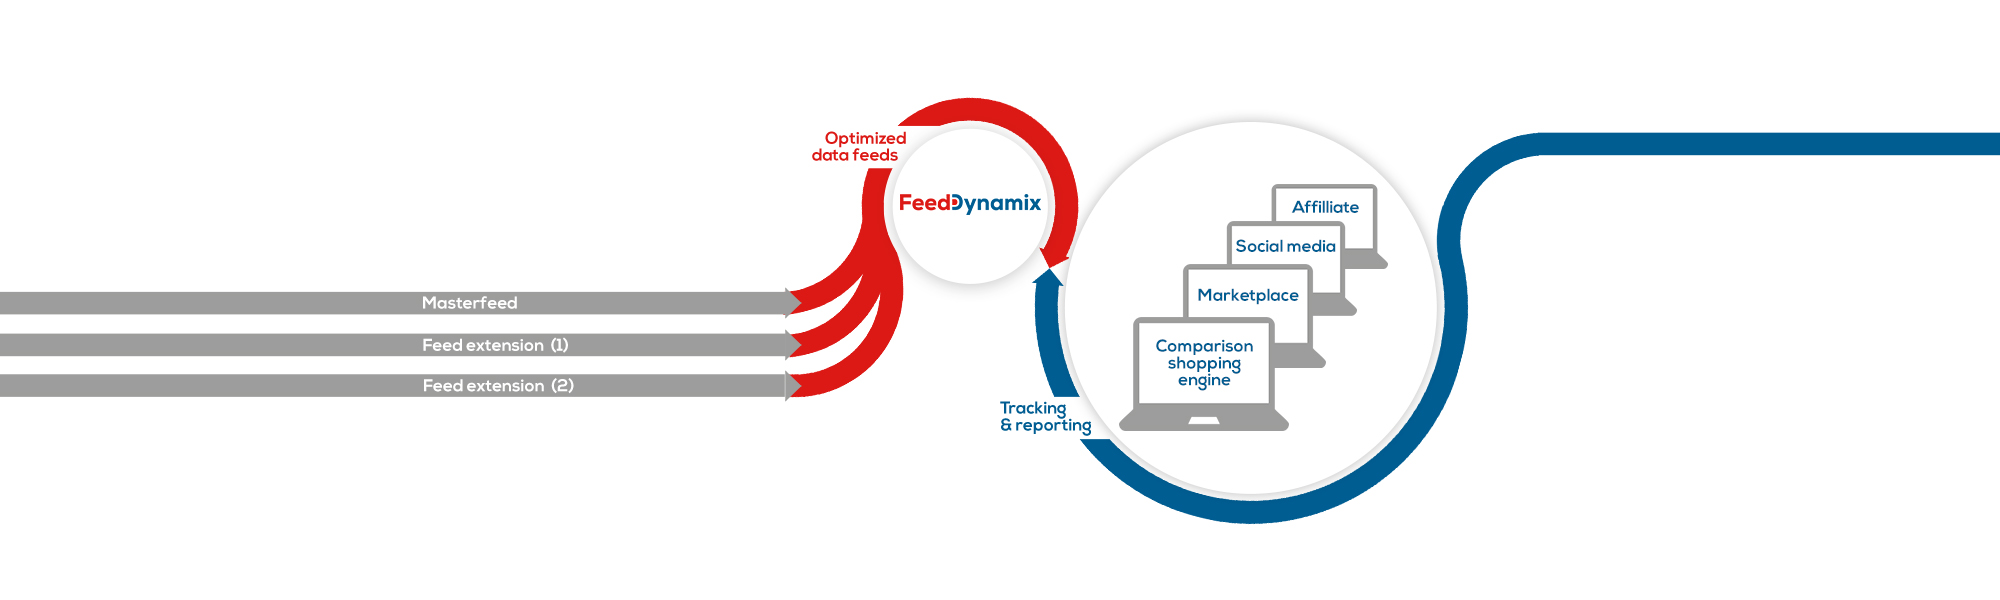 Feed Engine | Infographic EN | Feed Dynamix